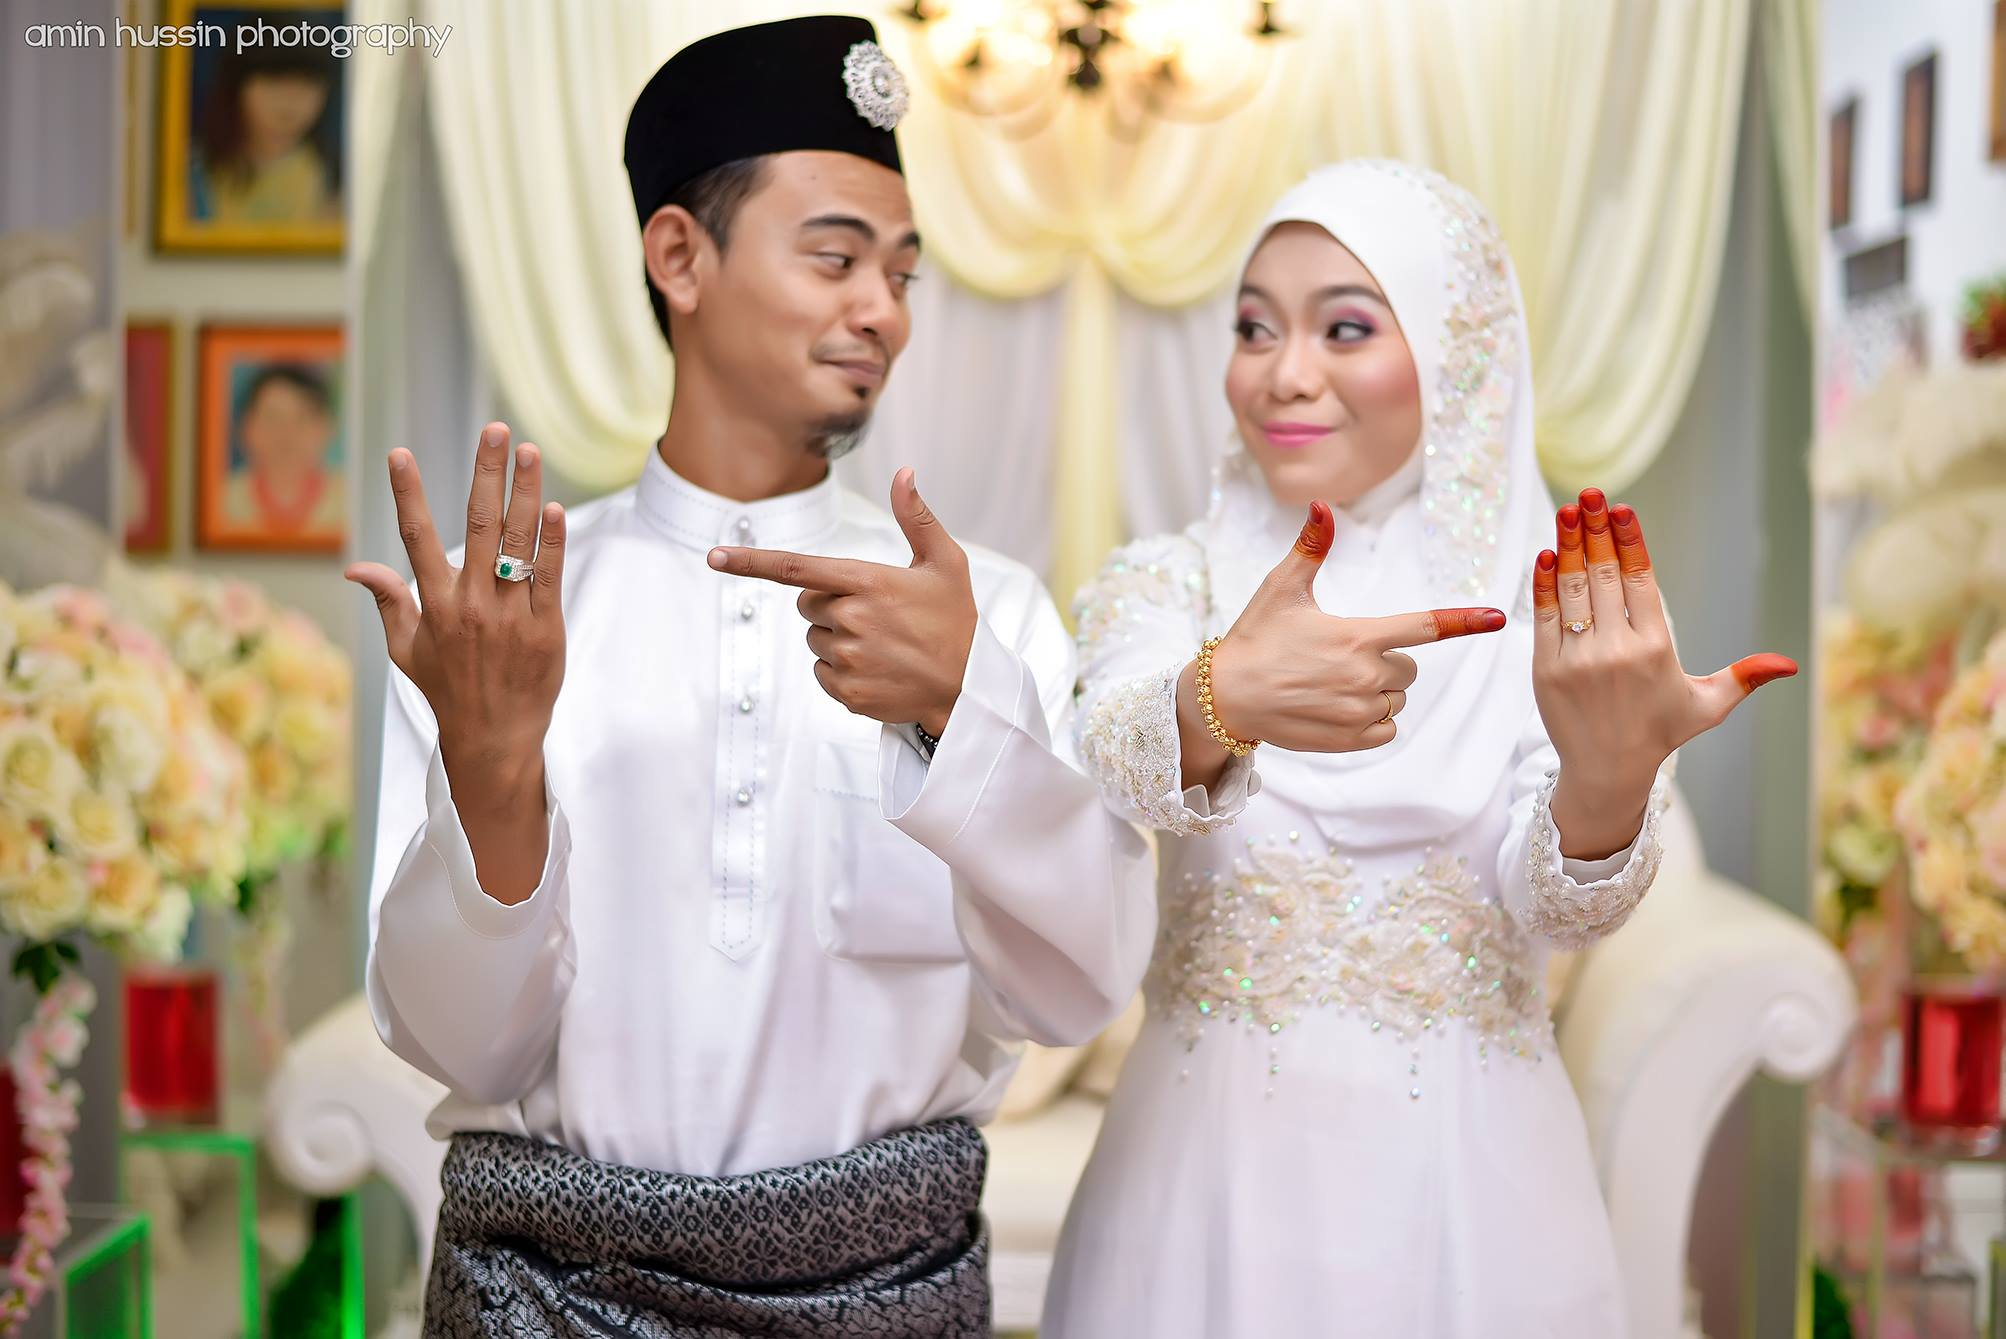 7 Quirky Wedding Traditions Around The World: 7 Beautiful Muslim Wedding Customs Around The World